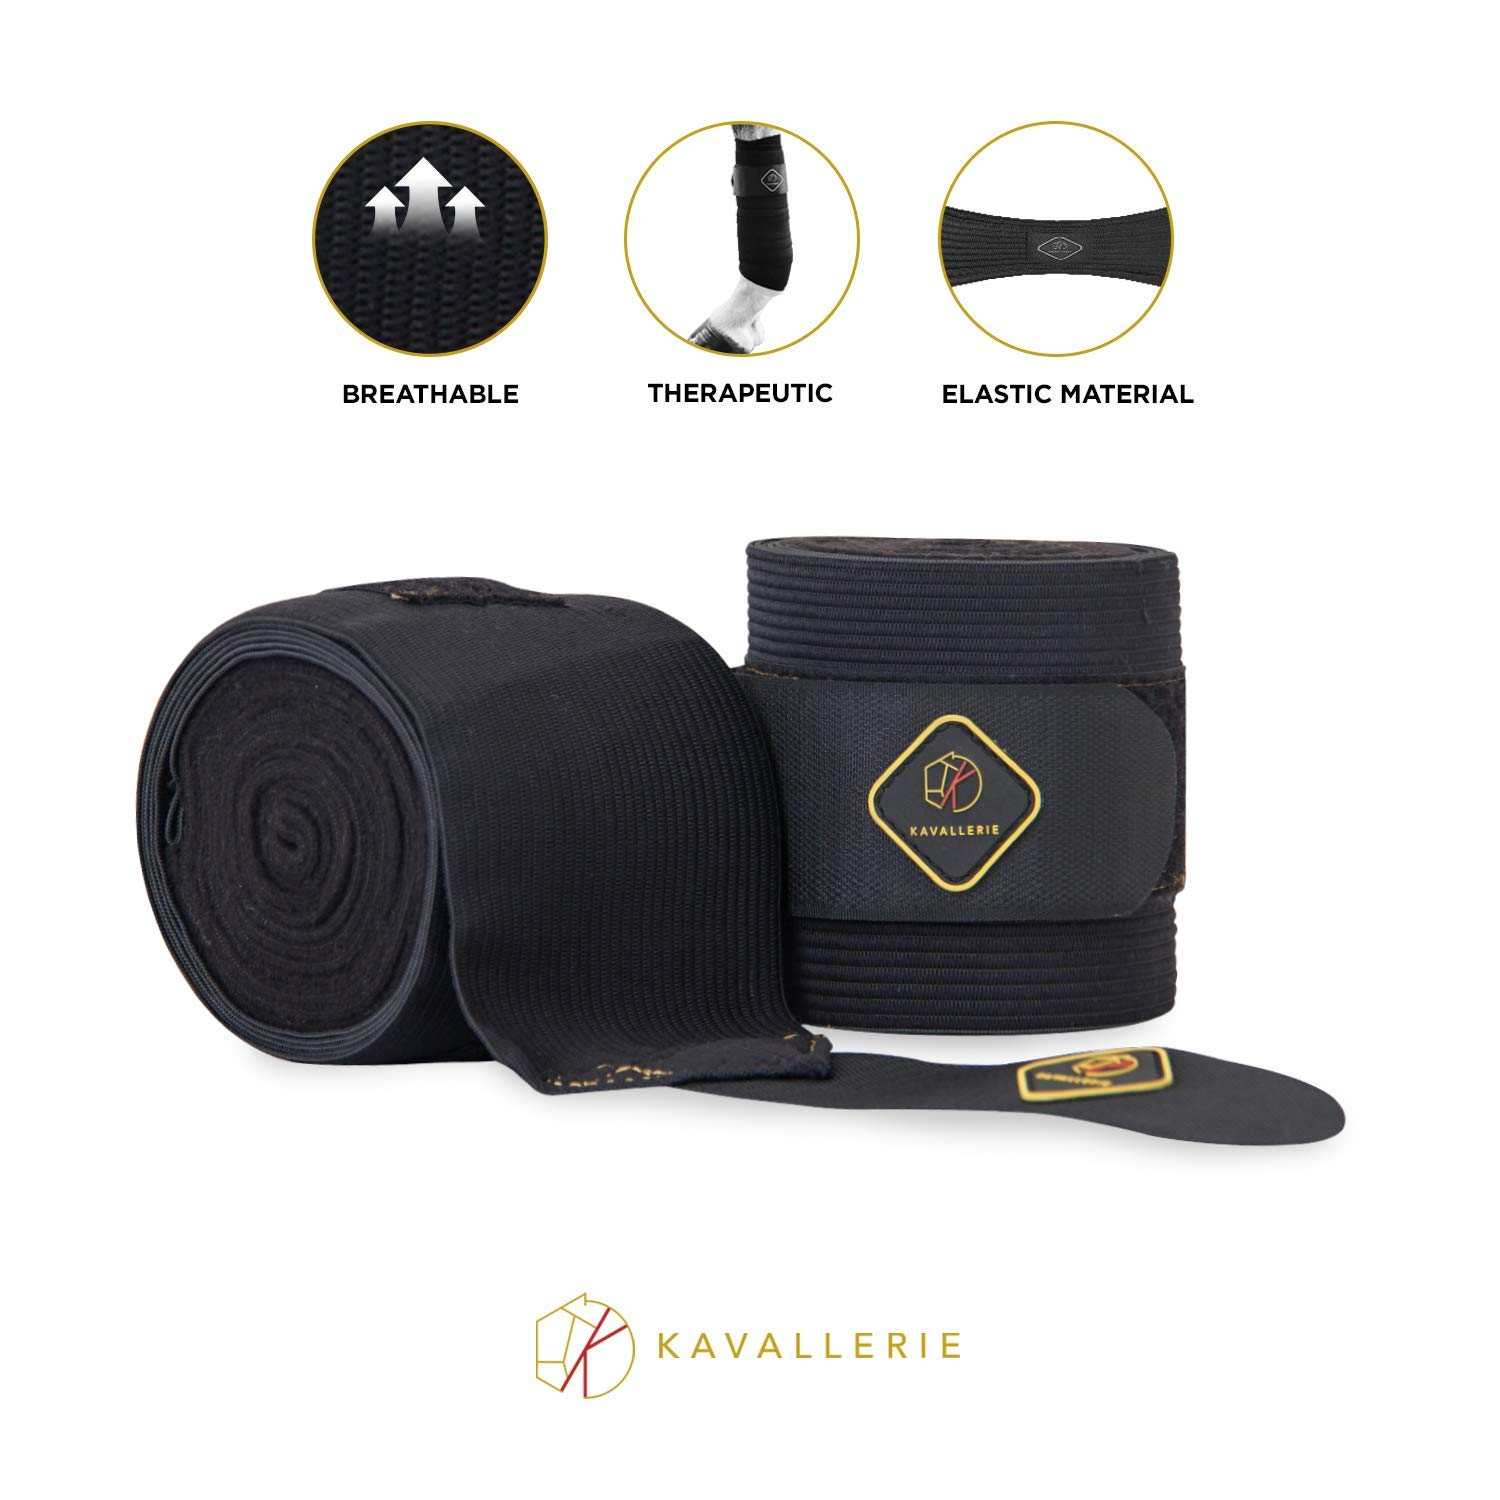 Kavallerie Elastic Fleece Polo Wraps for Horses, Non- Slip Bandage and Snug fit Breathable Material for Injury Protection and Superior Legs Support, Stocking up Solution-Black